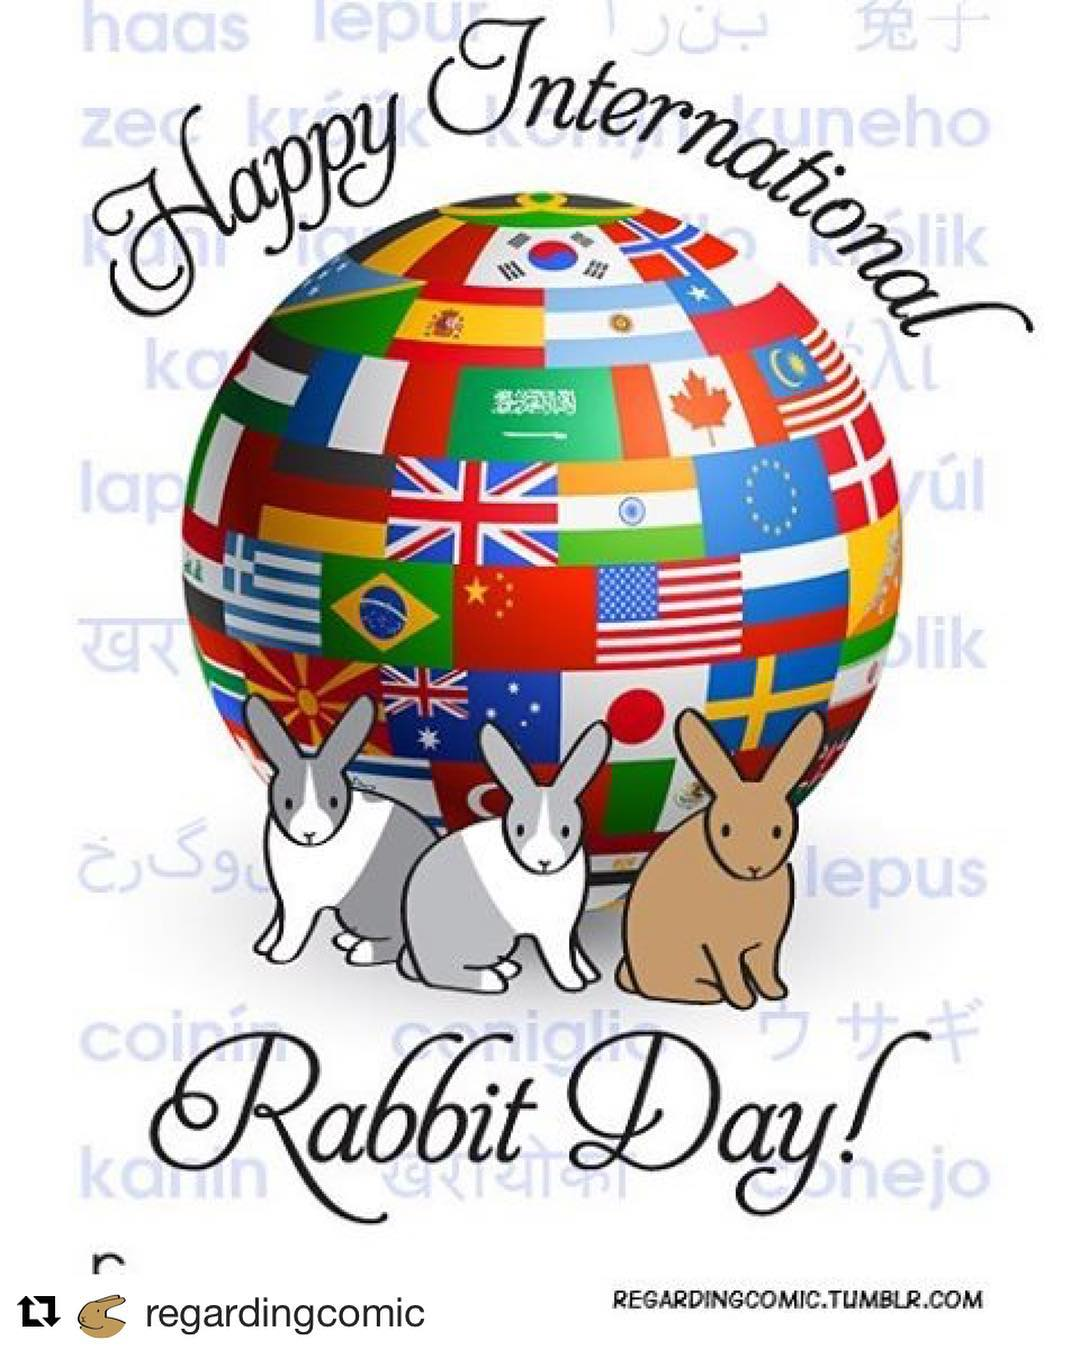 Happy international Rabbit Day everybody! Reposting this lovely post from @regardingcomic . Be sure to check out regardingcomic.tumblr.com